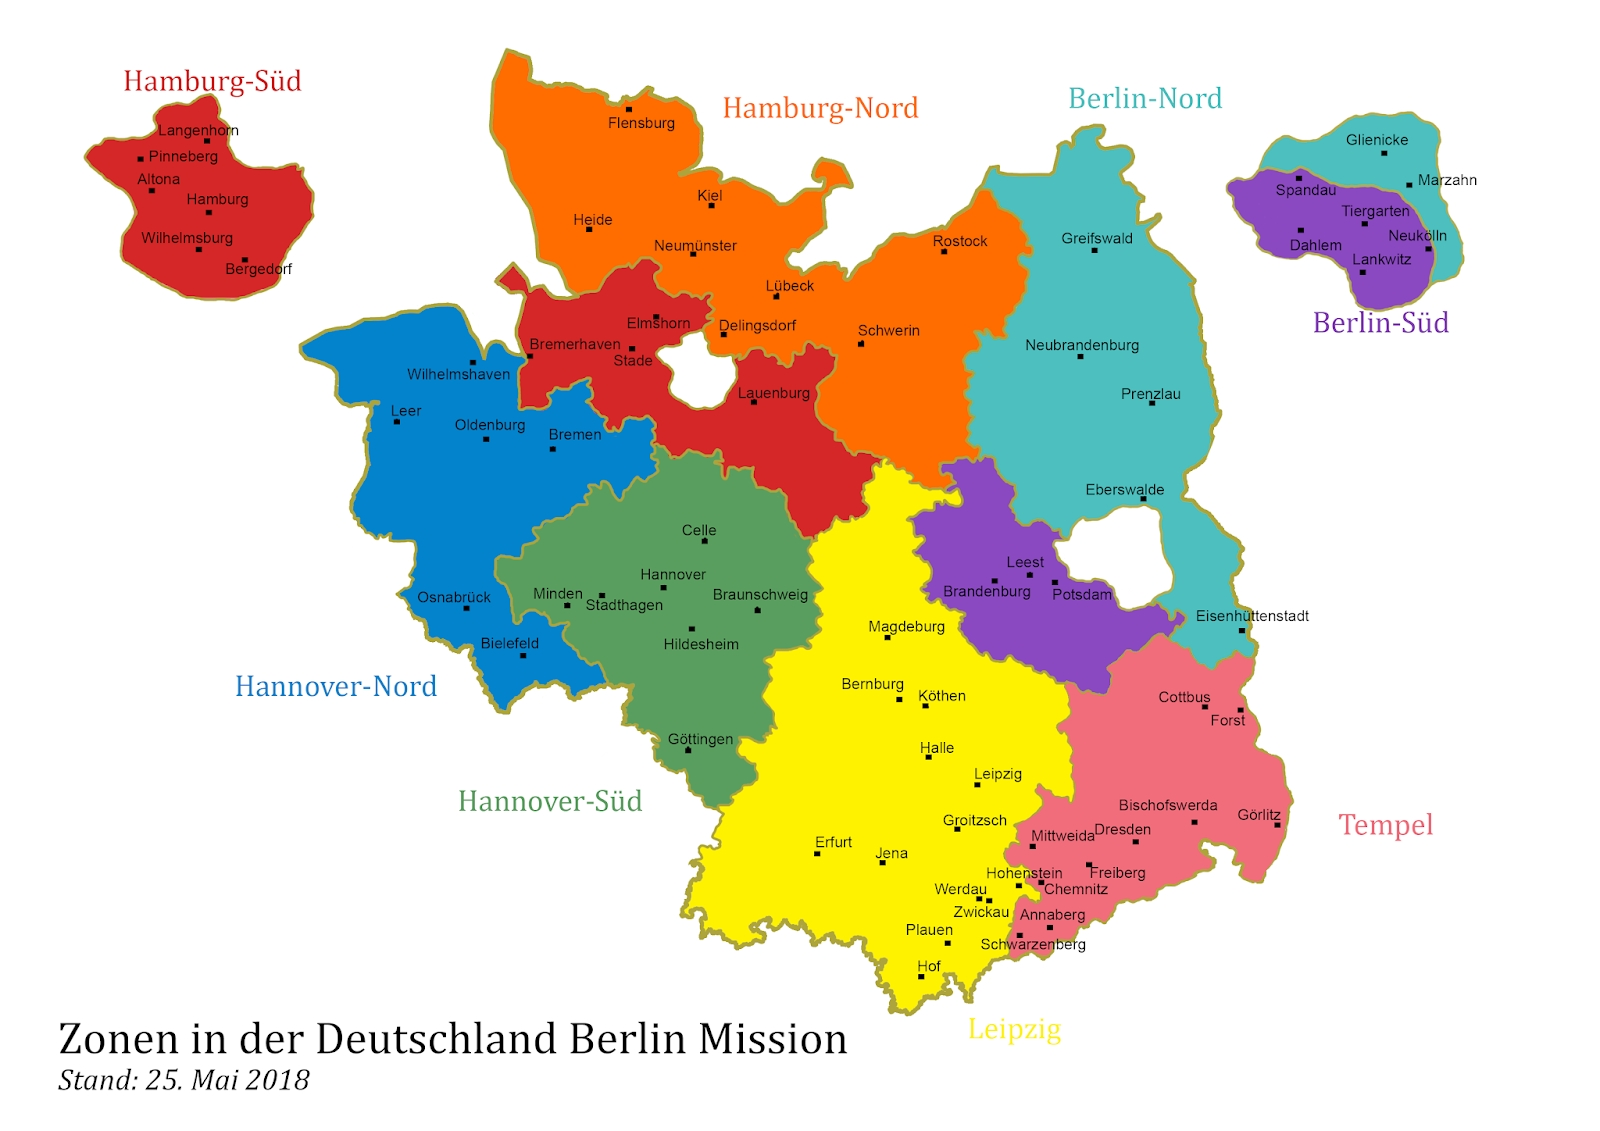 Germany Berlin Mission 2015-2018 throughout Frankfurt Germany Mission Map